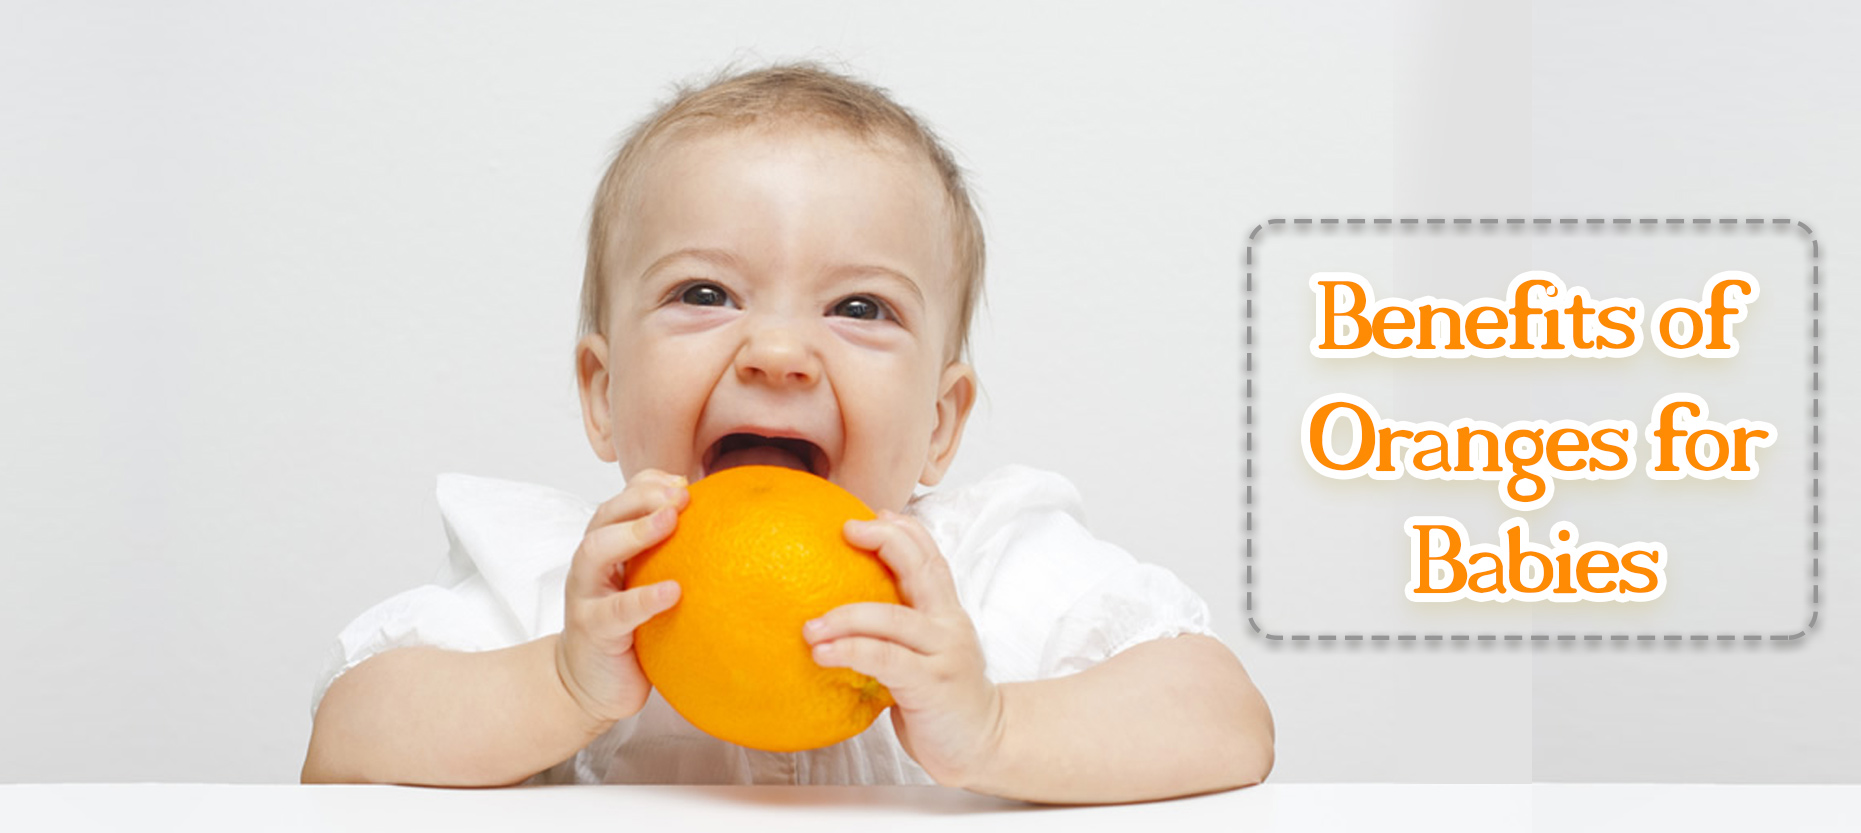 Benefits of Oranges for Babies